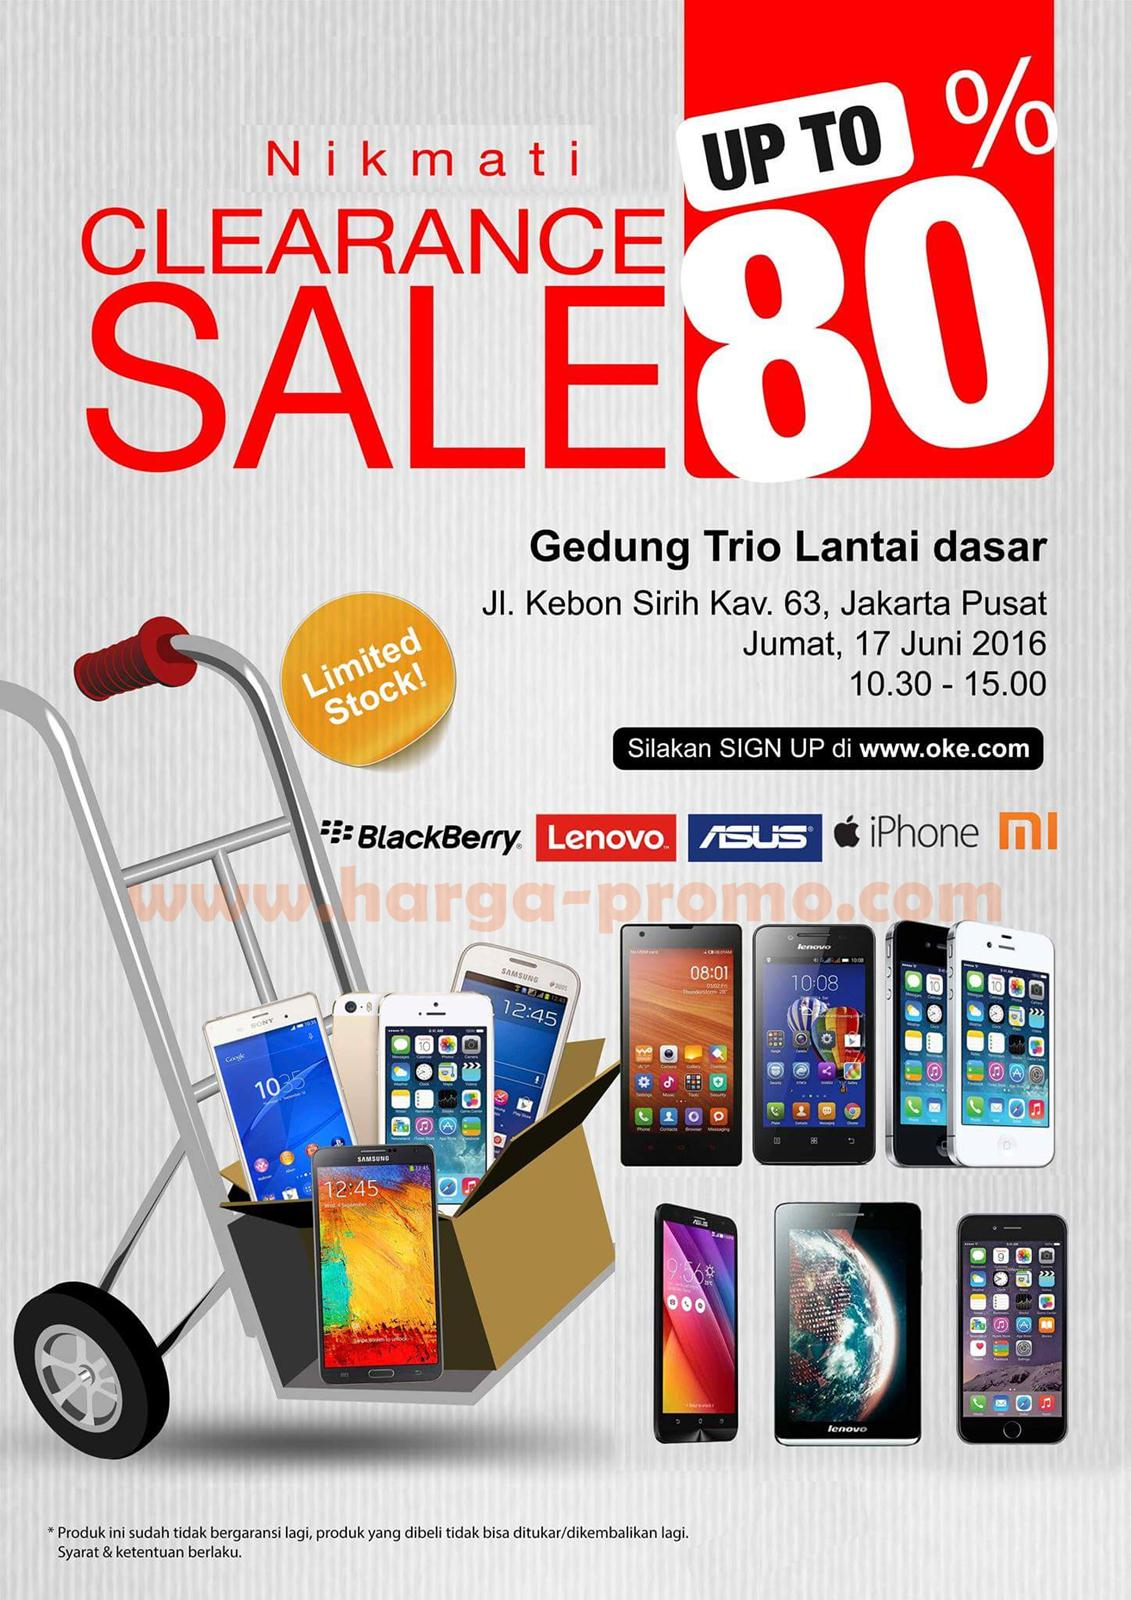 Promo oke shop terbaru clearance sale up to 80 periode 17 juni 2016 promo oke shop terbaru clearance sale up to 80 periode 17 juni 2016 reheart Image collections